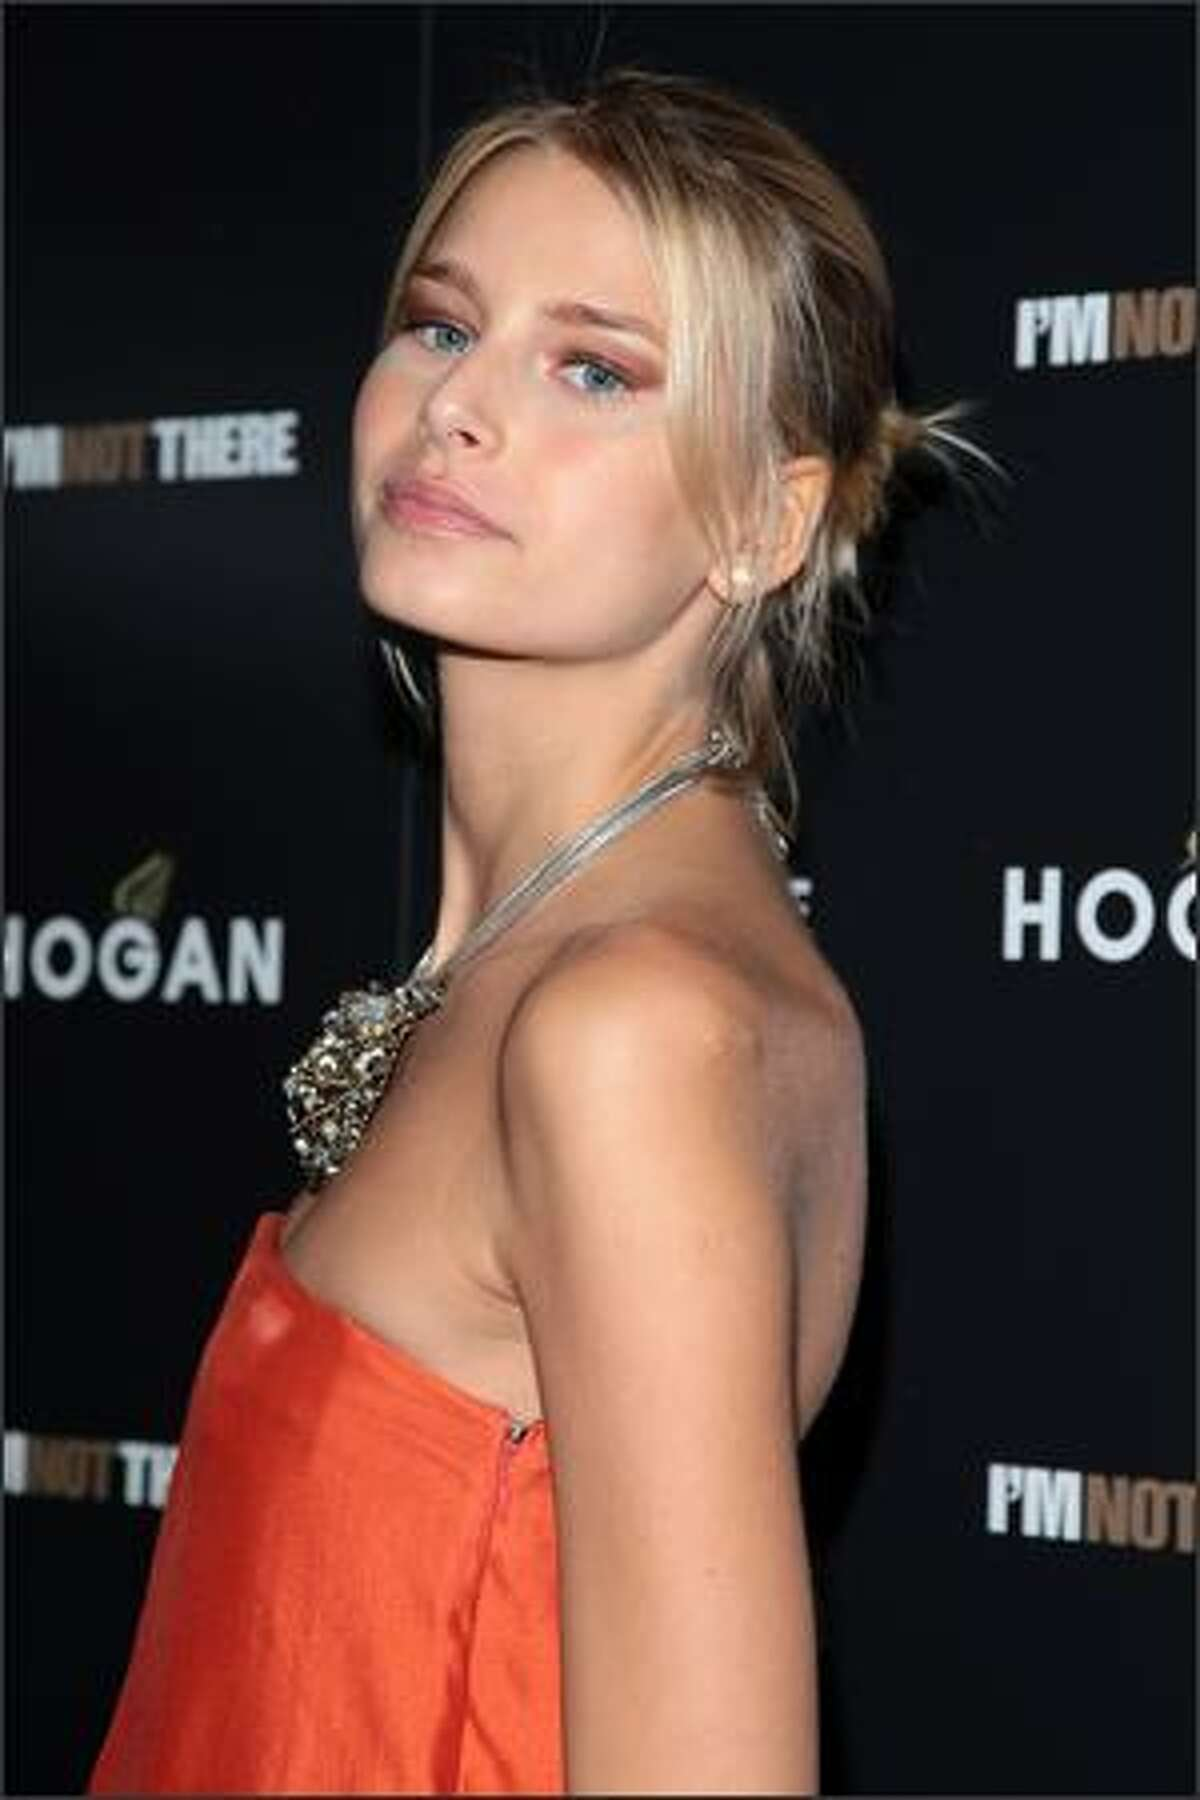 """Model Hana Soukupova attends the New York premiere of """"I'm Not There"""" presented by The Cinema Society and Hogan at the Chelsea West Cinemas on November 13, 2007 in New York City."""